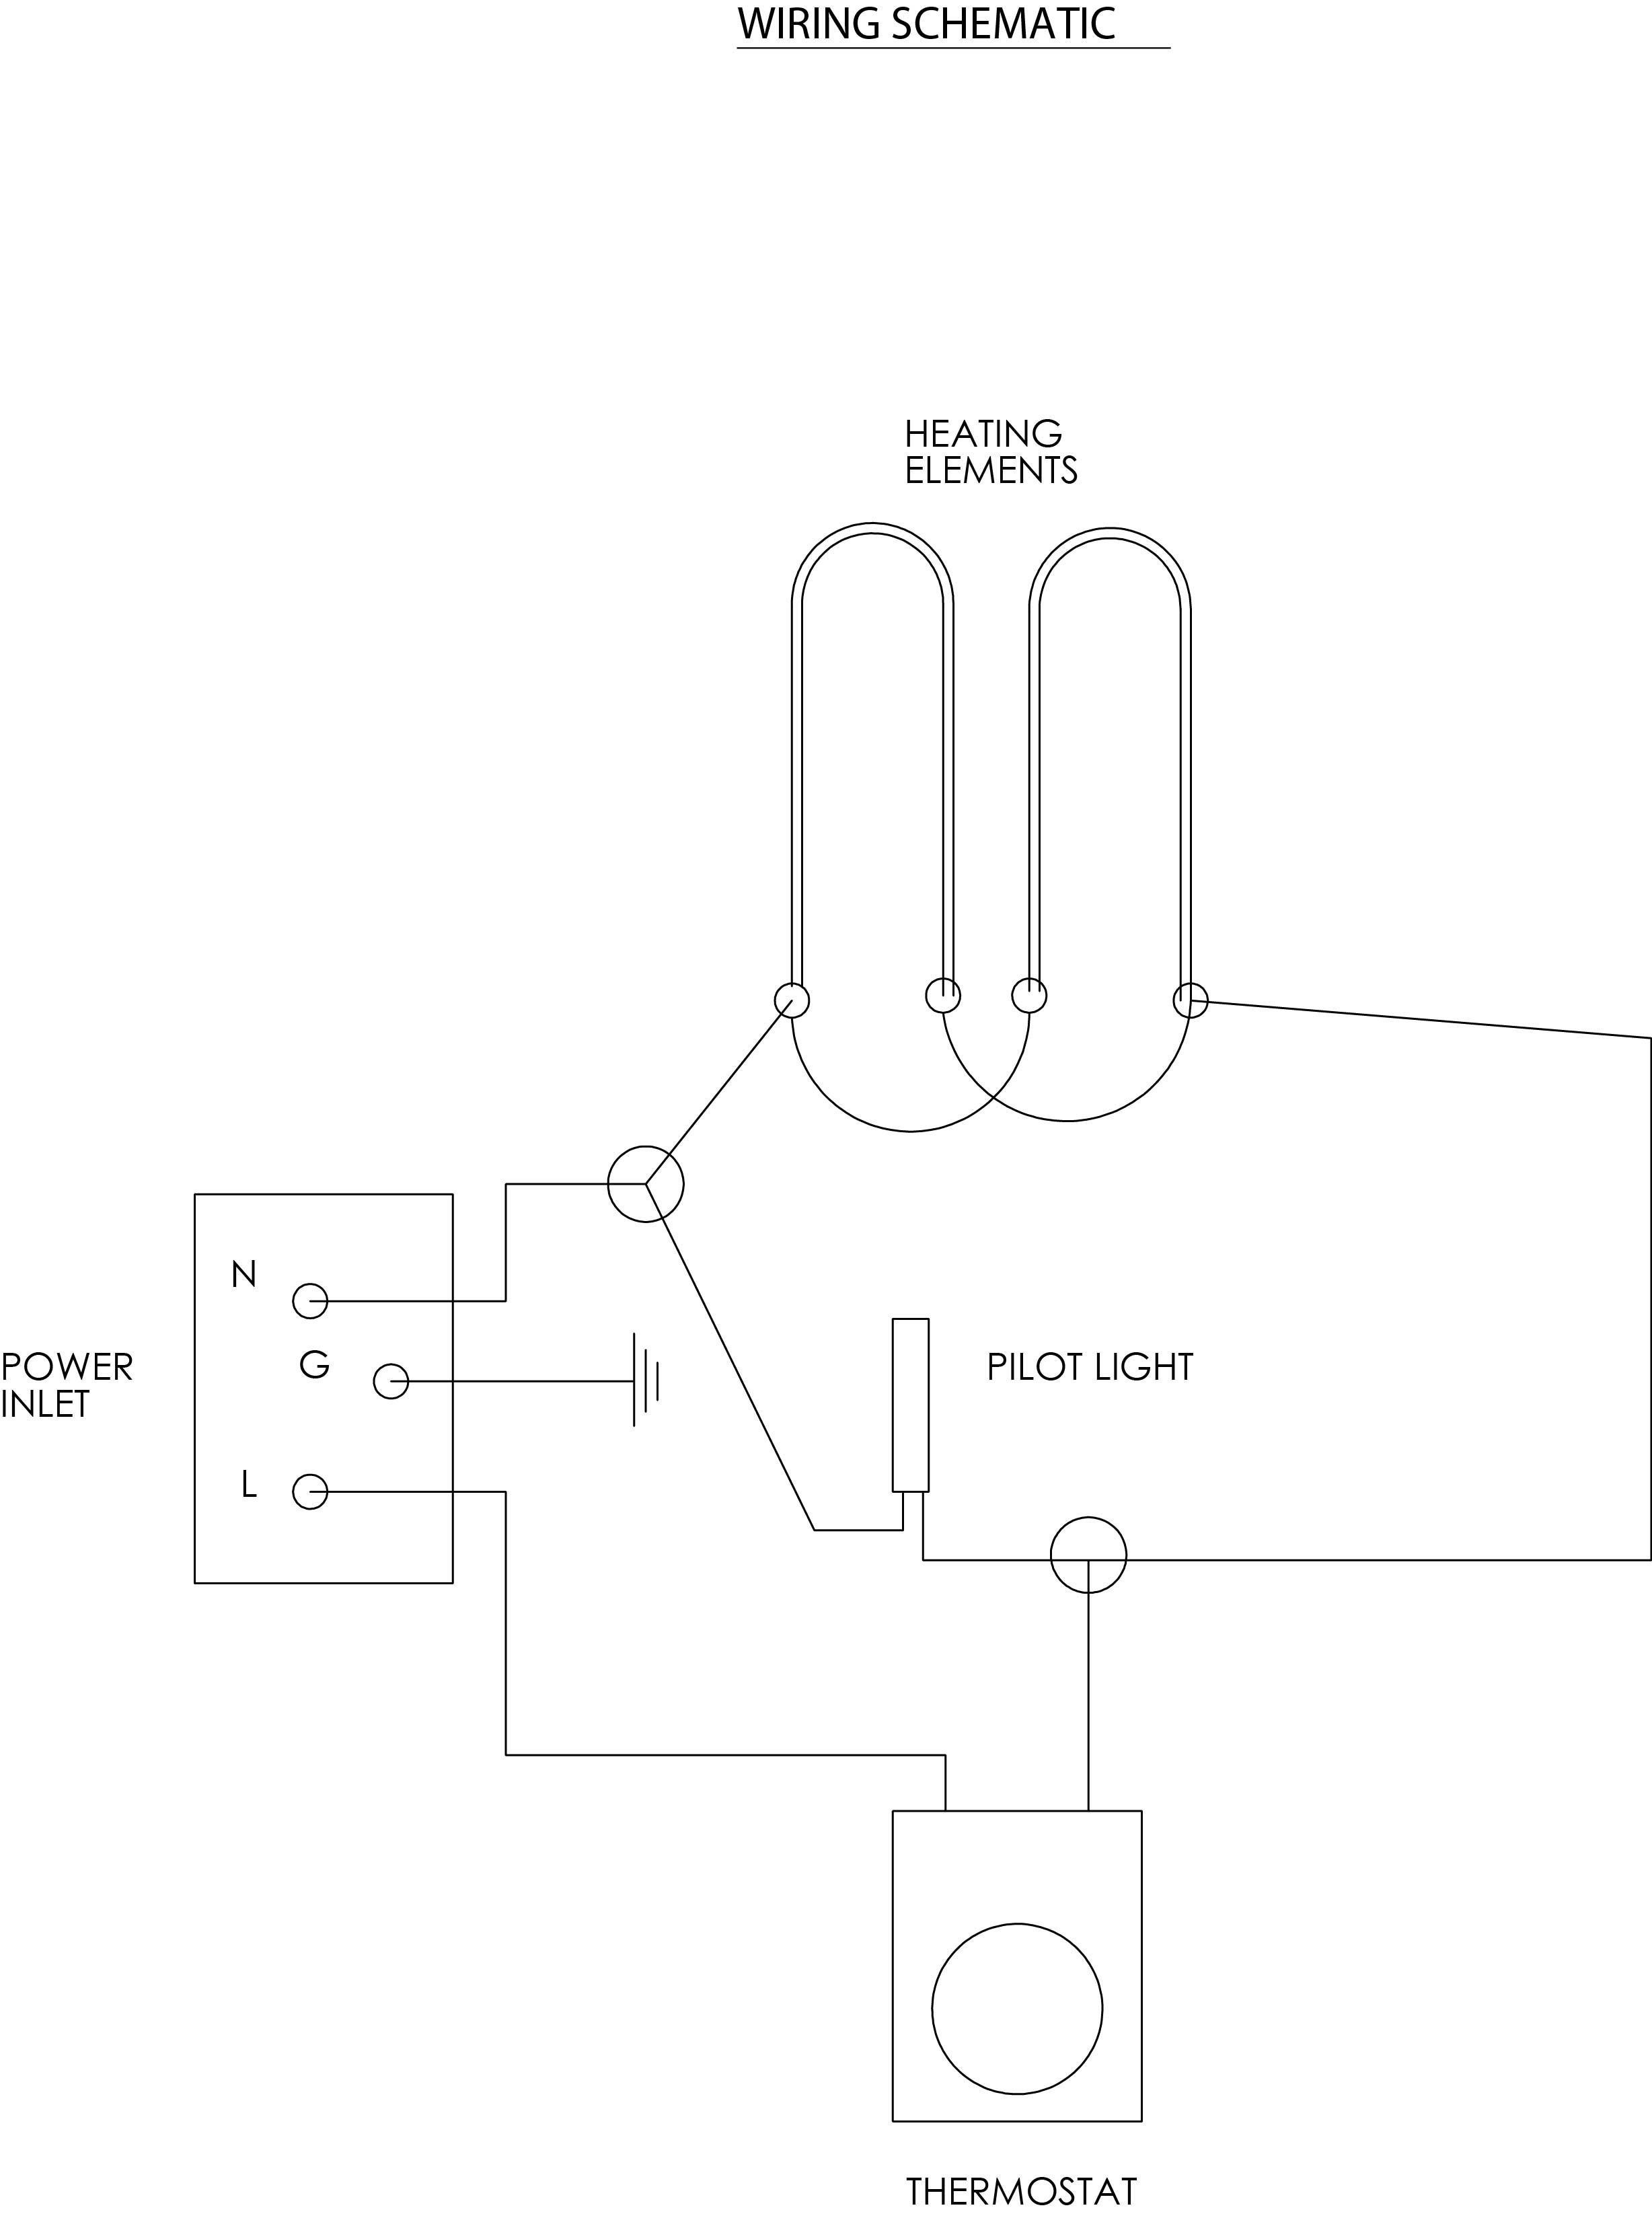 v reversing motor wiring diagram v discover your wiring 120 volt electrical relay wiring diagram